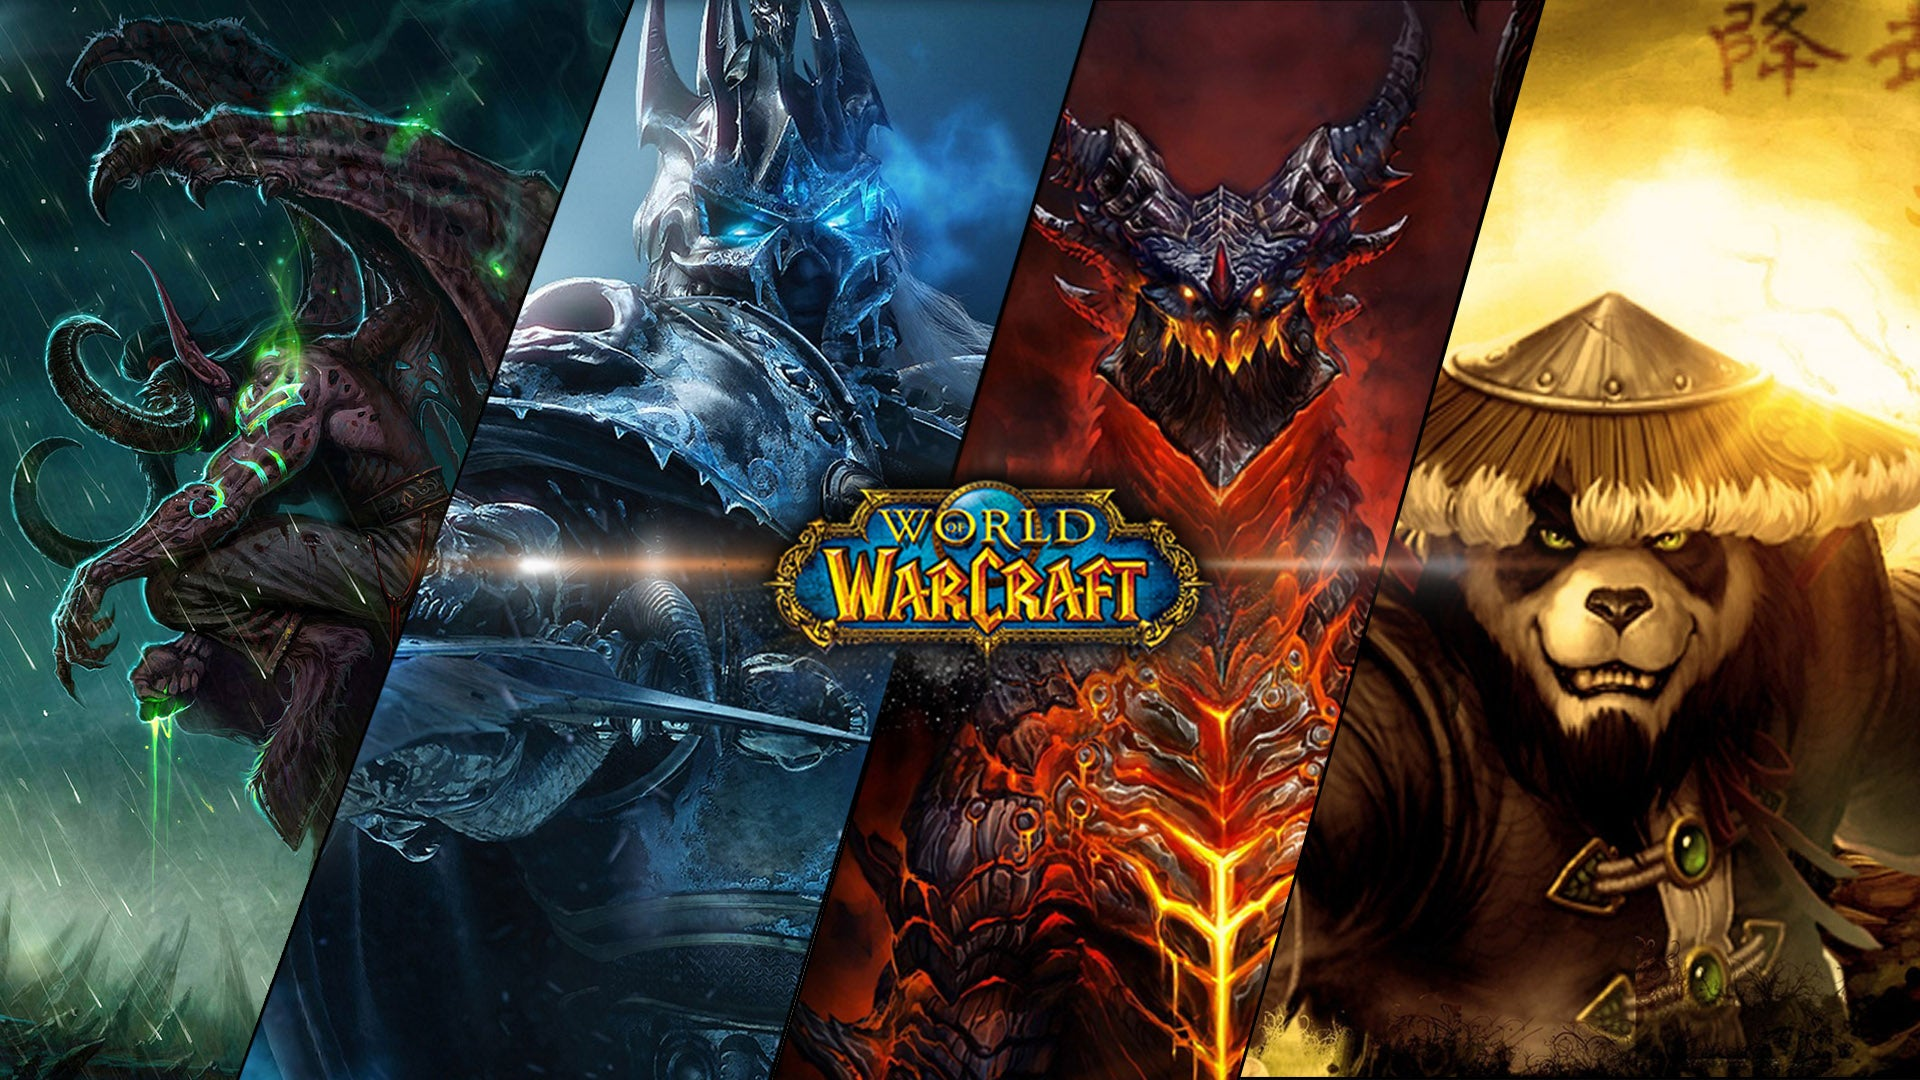 More World Of Warcraft New Expansion Hints Revealed On Beta Servers